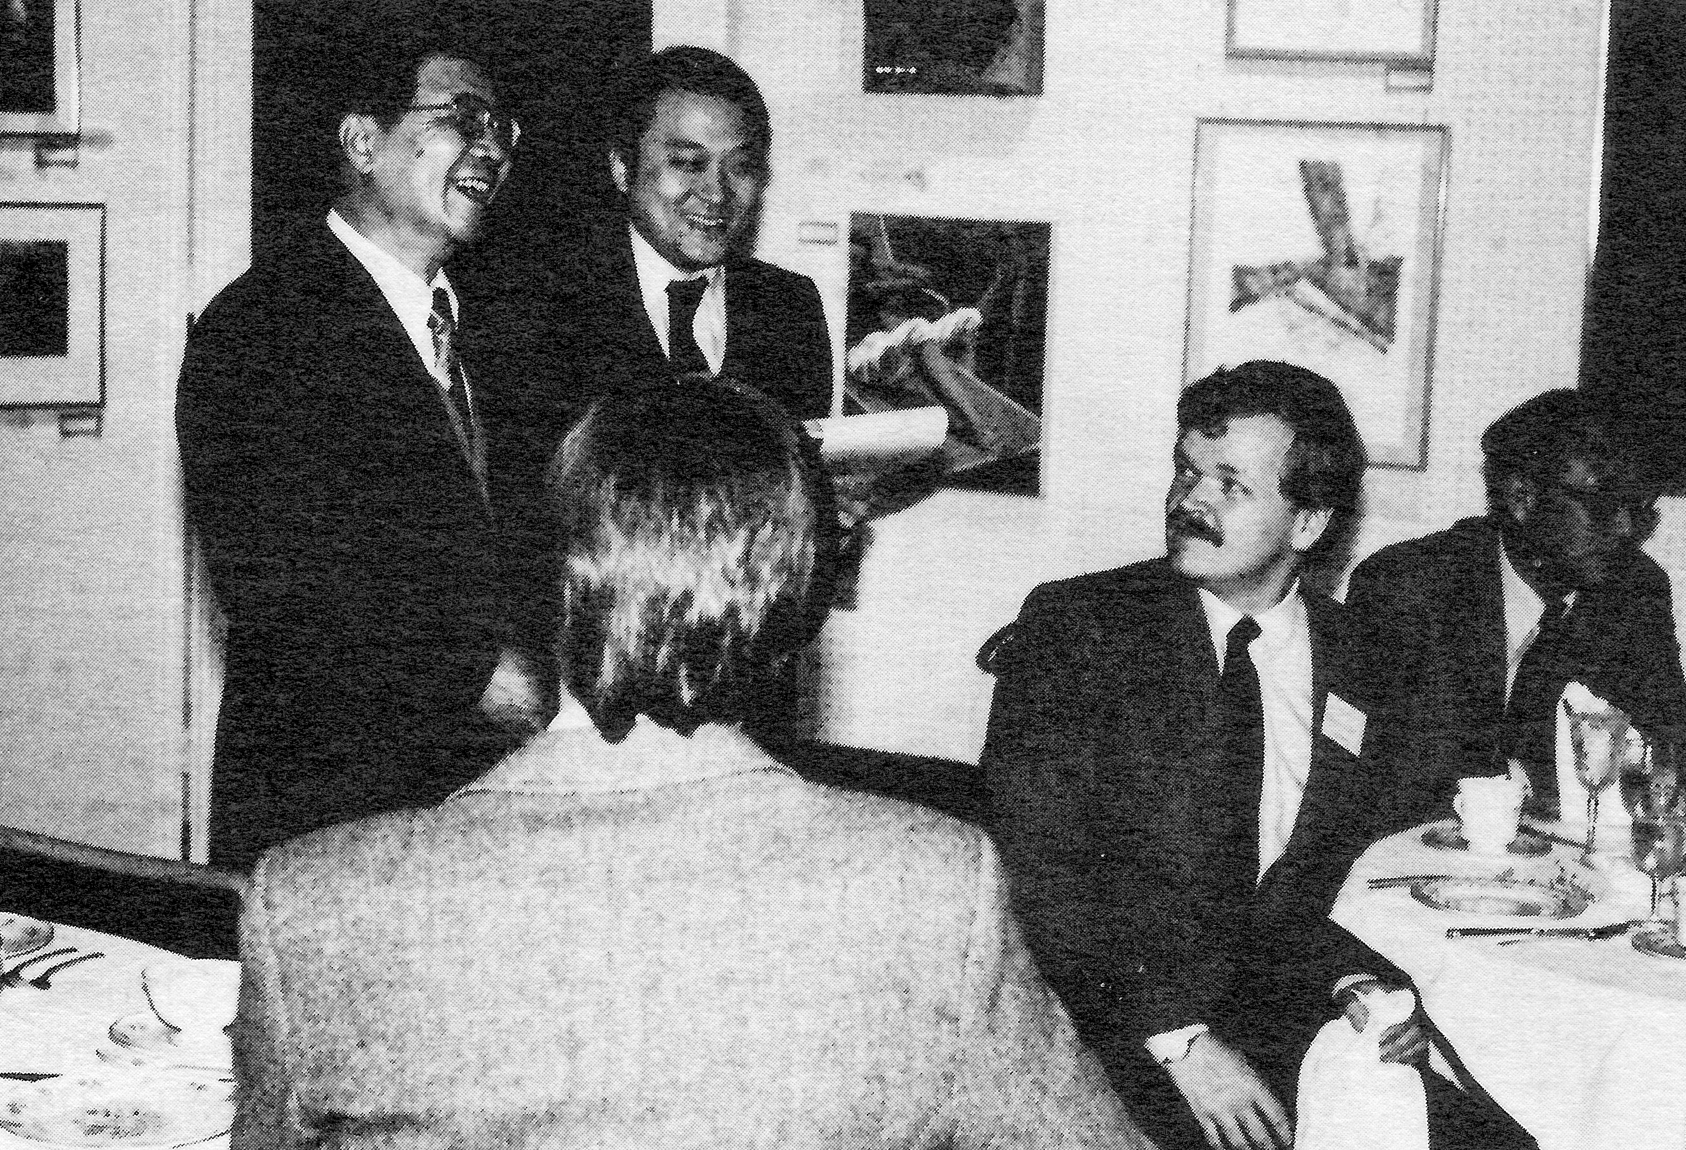 Wang Baihua (left) chatting with art teachers of the Mamaroneck (NY) High School. Interpreter Ken Hao (center) is assisting; delegation member Lü Zhengwu is seated on the far right